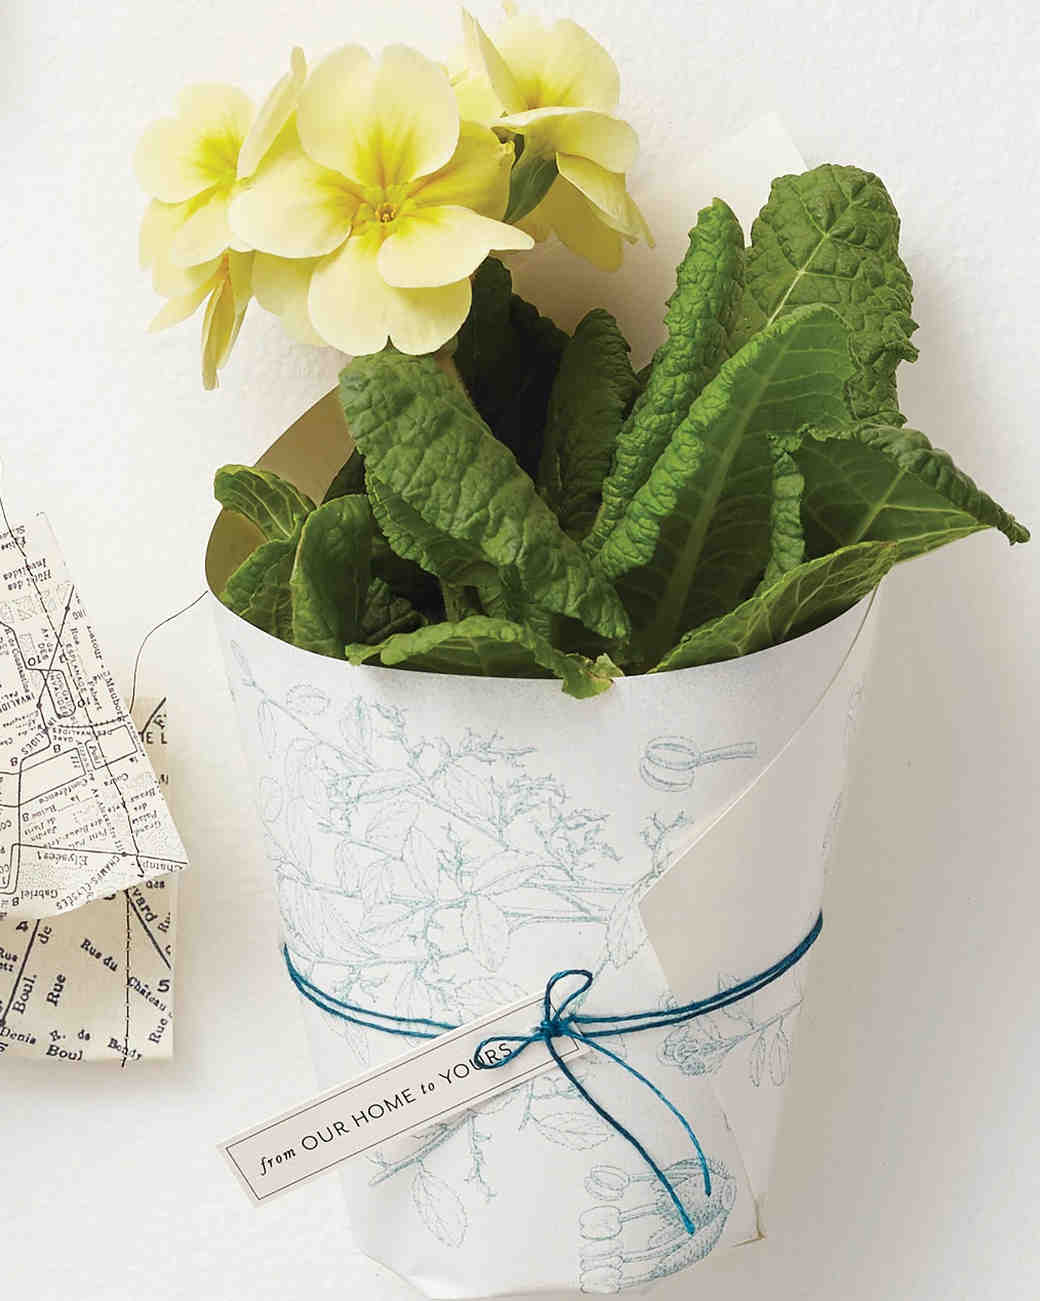 party-favors-patterned-paper-and-string-plant-favor-wrap-187-d112911.jpg